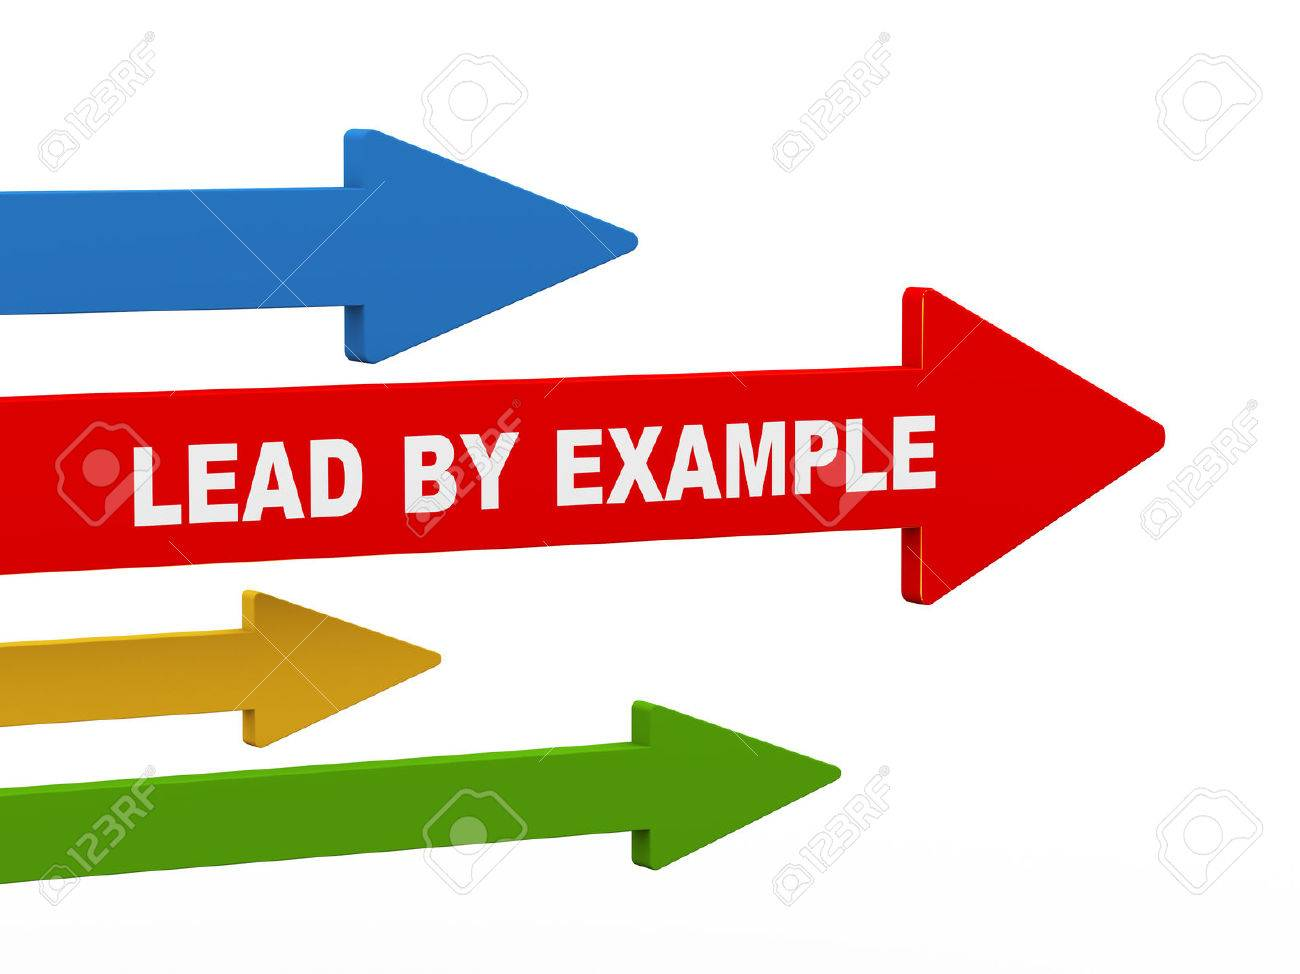 d illustration of leading red arrow having phrase lead by example 3d illustration of leading red arrow having phrase lead by example concept of leadership